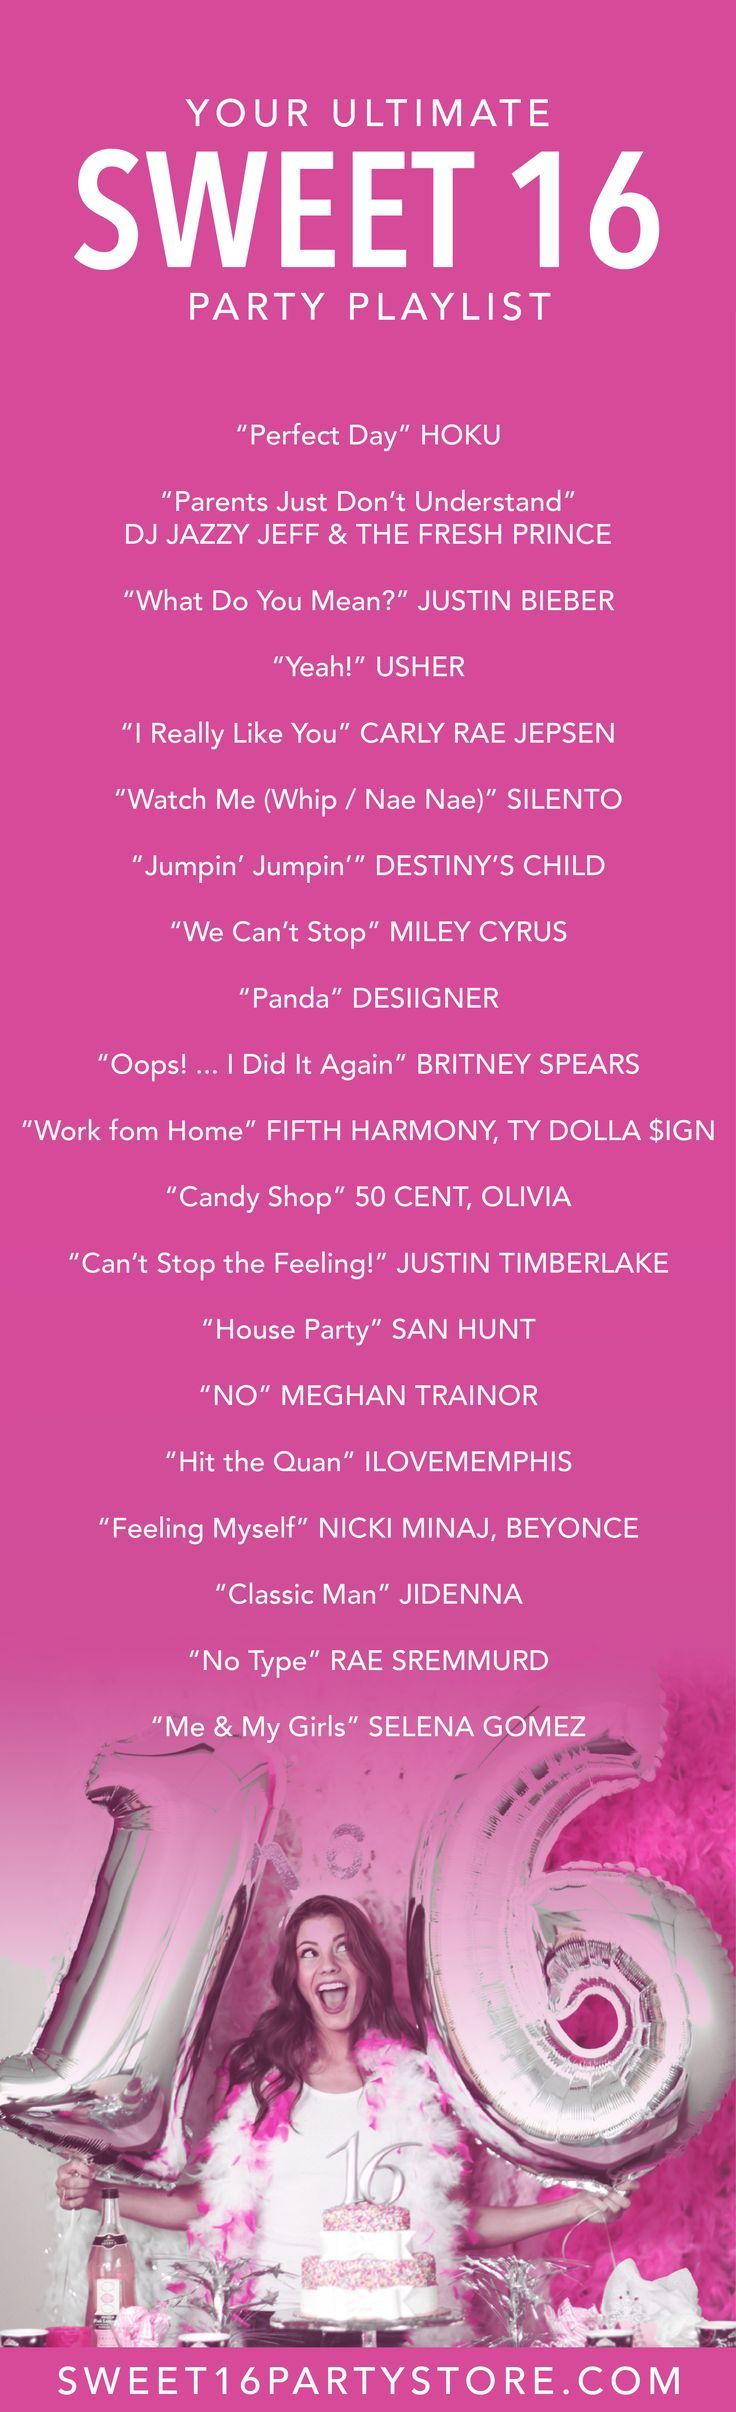 the ultimate sweet 16 party playlist from sweet 16 party store